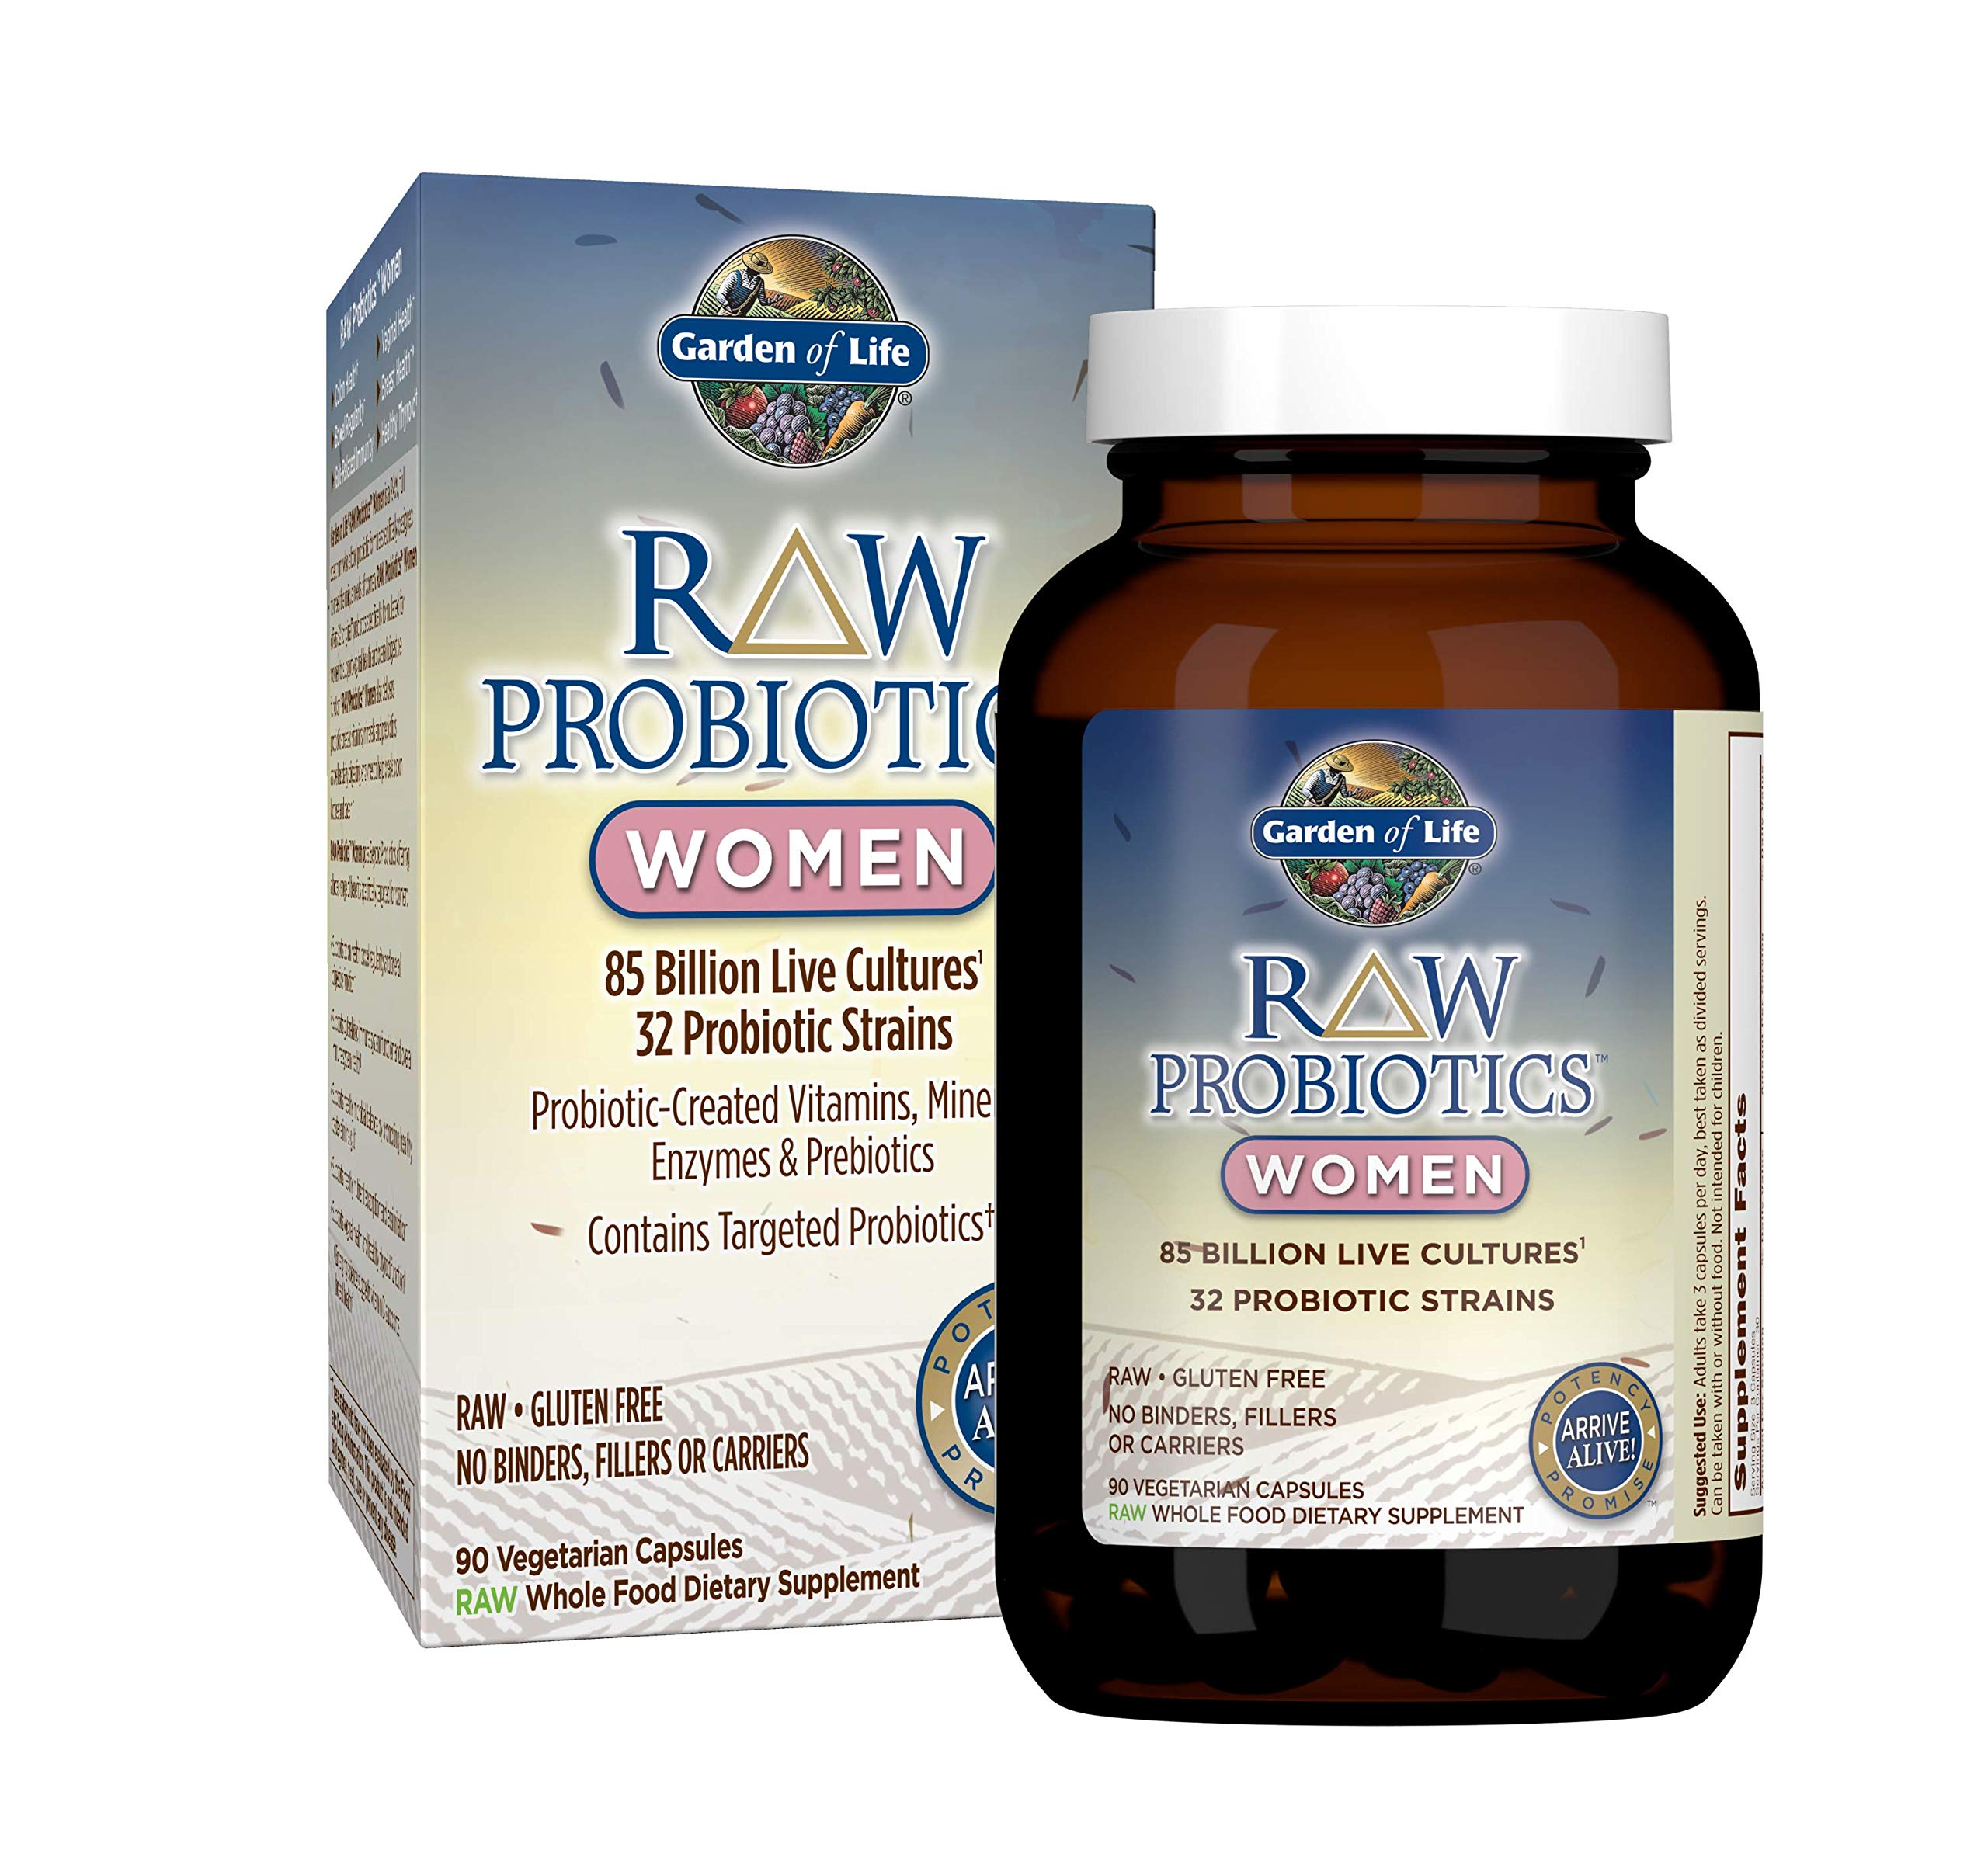 Garden of Life - RAW Probiotics Women - Acidophilus Live Cultures - Probiotic-Created Vitamins, Minerals, Enzymes and Prebiotics - Gluten Free - 90 Vegetarian Capsules by Garden of Life